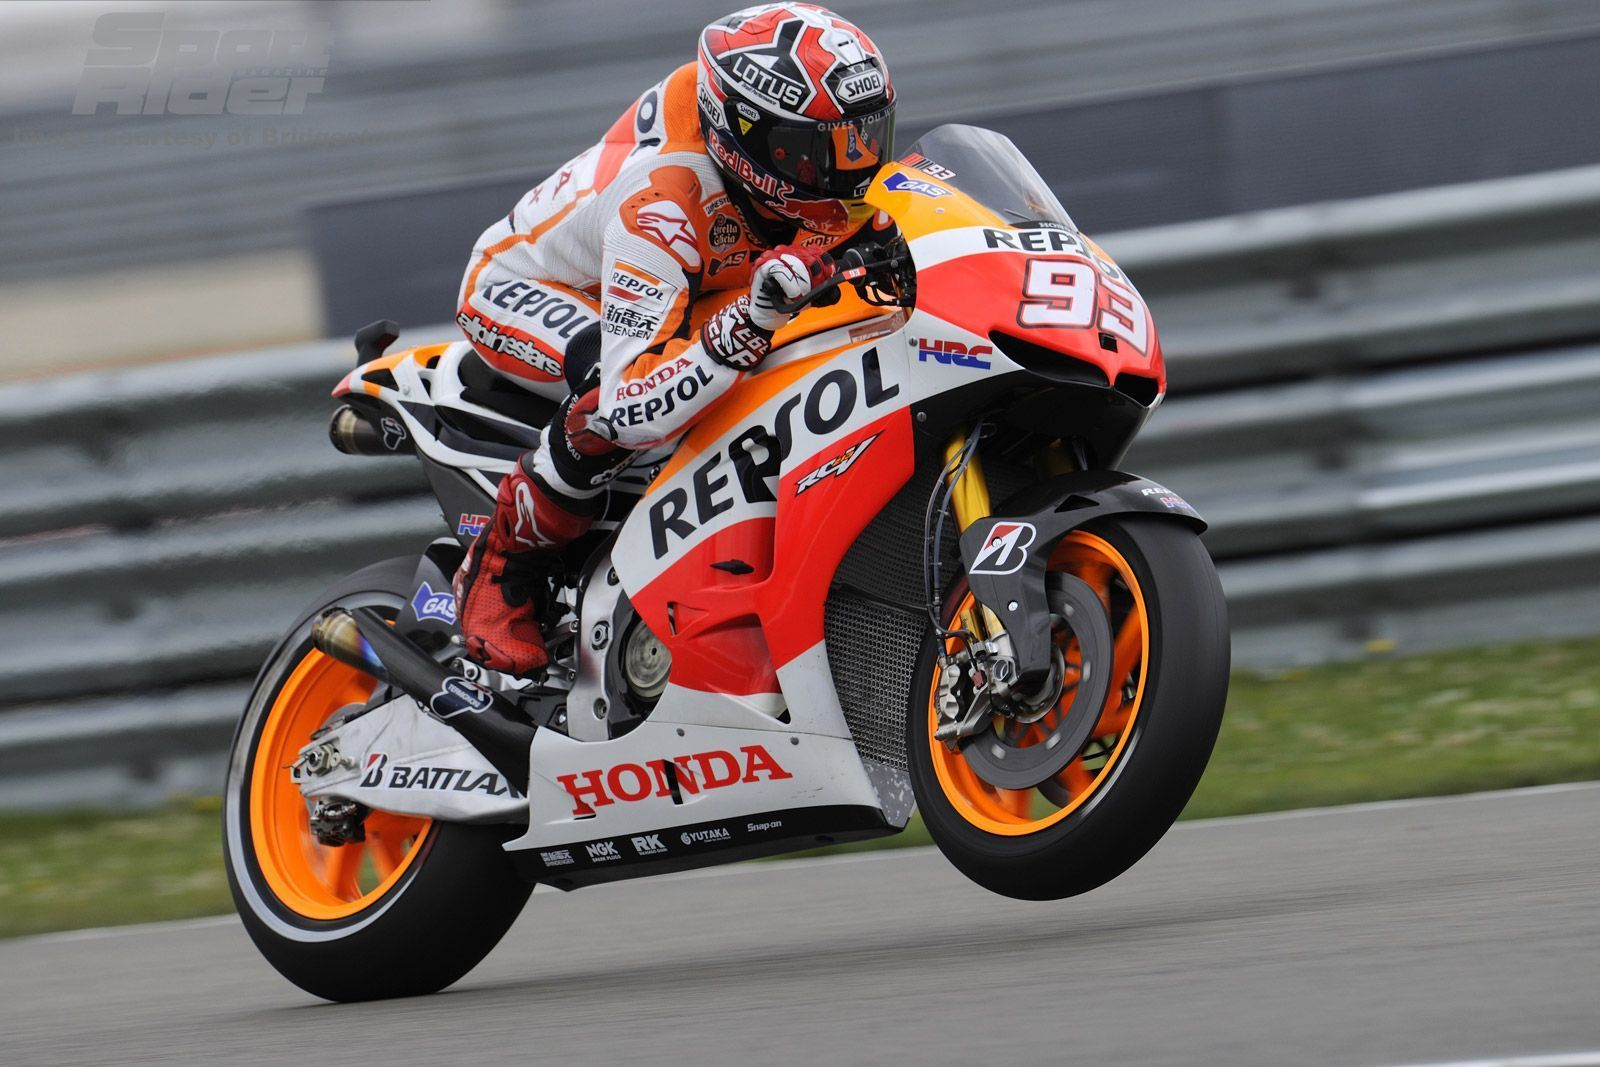 Marc-Marquez-93-Wallpapers-hd-Honda-Repsol-12